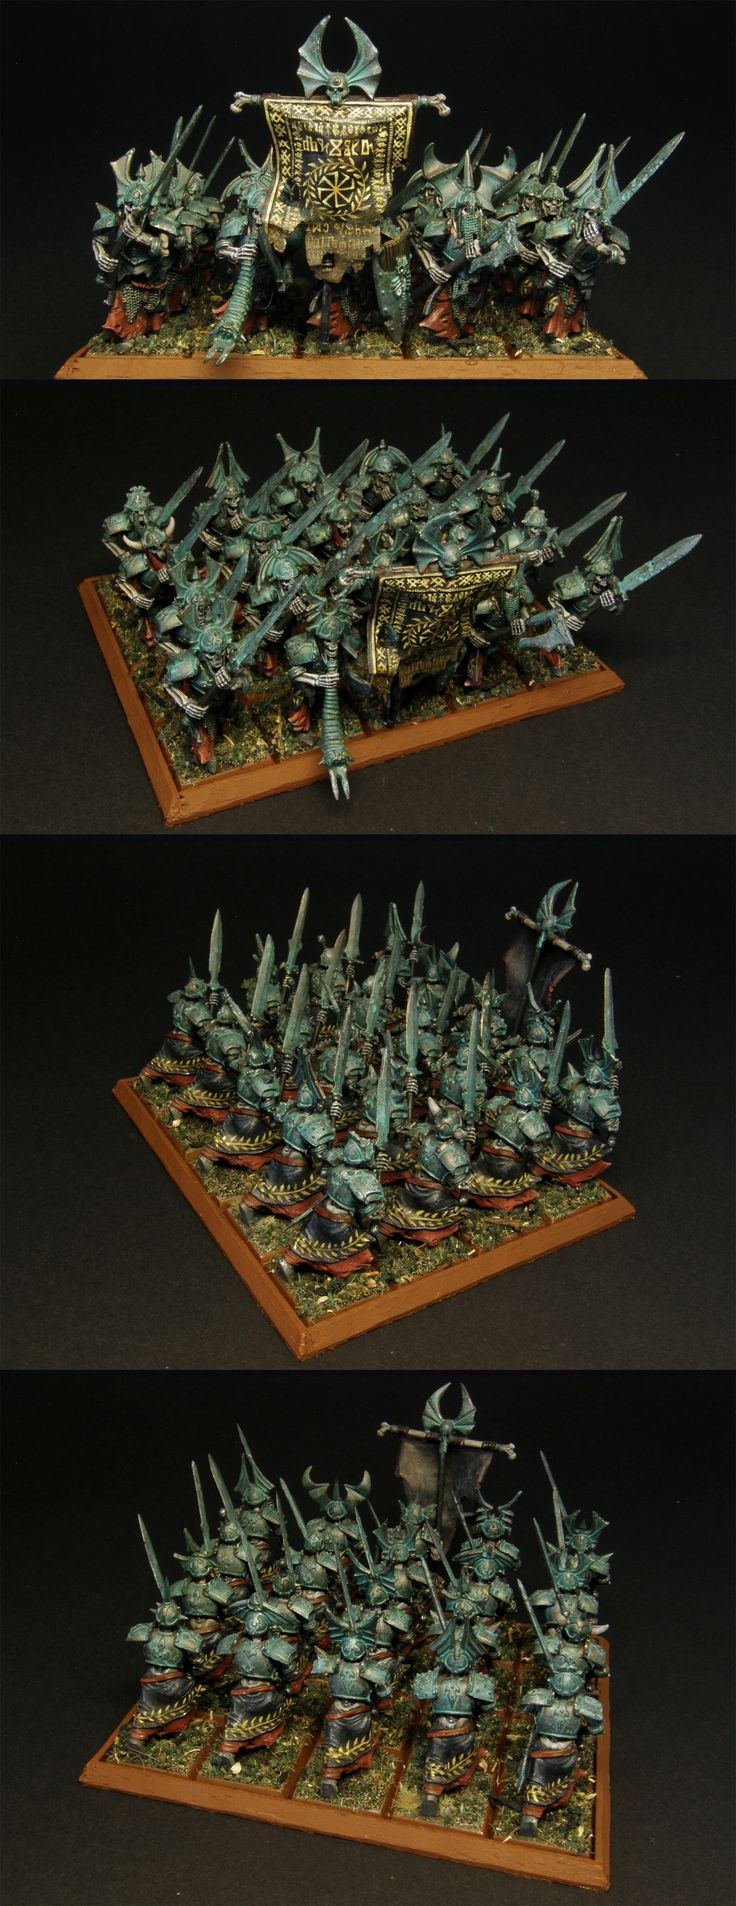 Grave Guard unit - painted for Vampire Counts, Warhammer Fantasy Battle - but can work for Age of Sigmar if need be. Right now they belong to the Deathrattle faction in Death Grand Alliance.